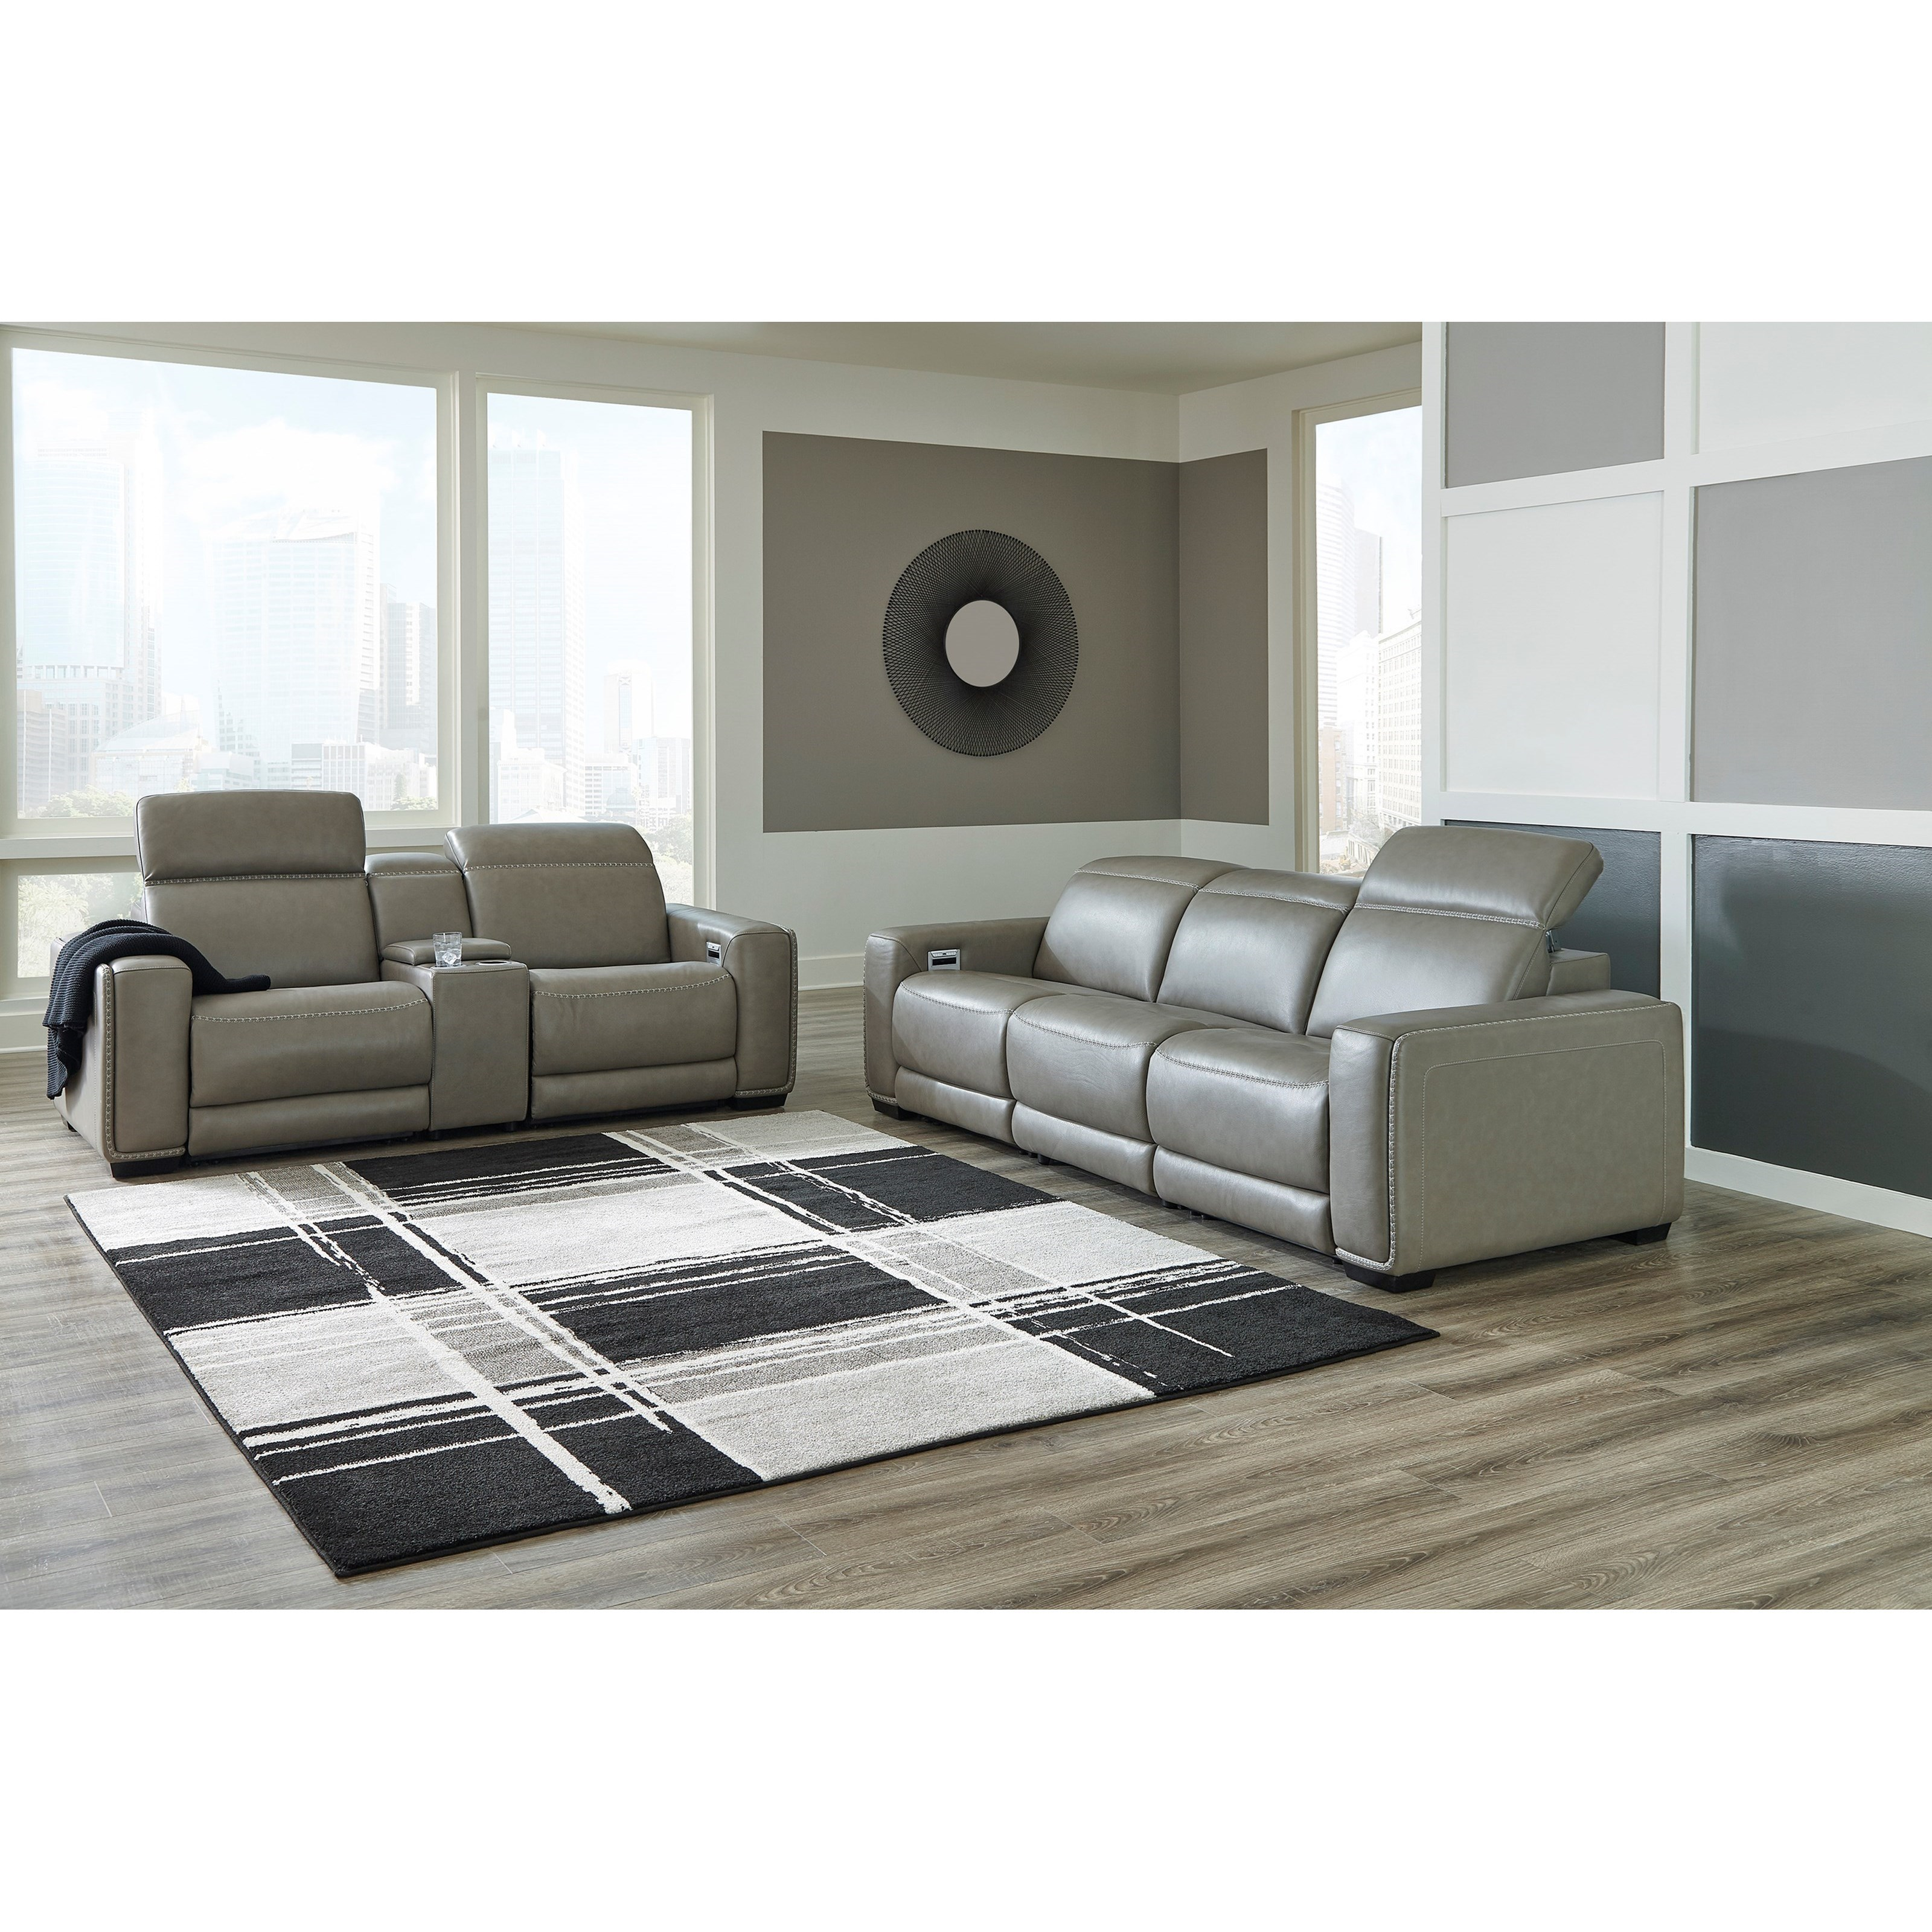 Correze Power Reclining Living Room Group by Signature Design by Ashley at Smart Buy Furniture